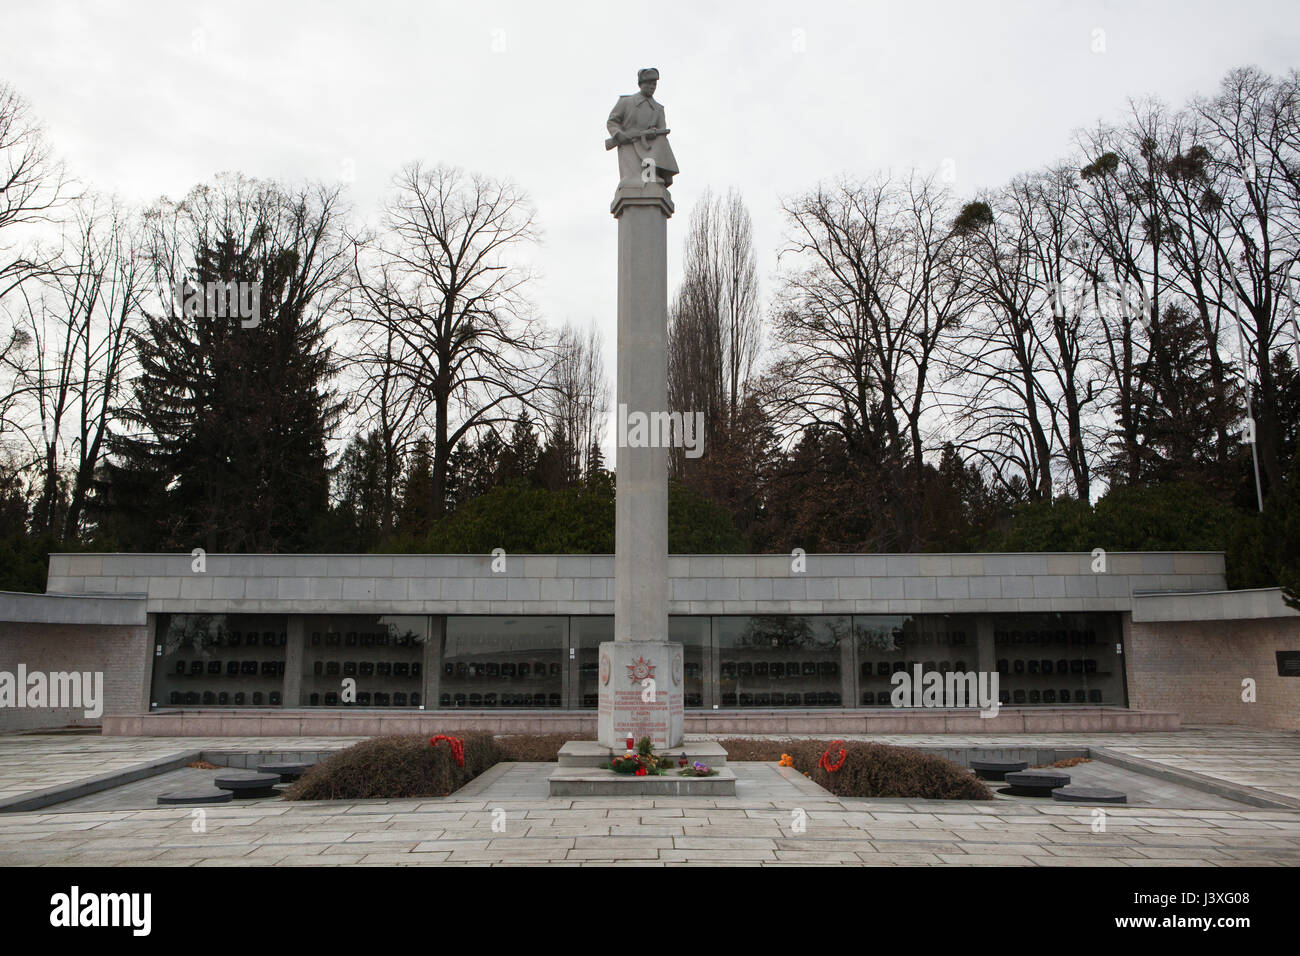 Soviet War Memorial at the Central Cemetery in Brno, Czech Republic. - Stock Image